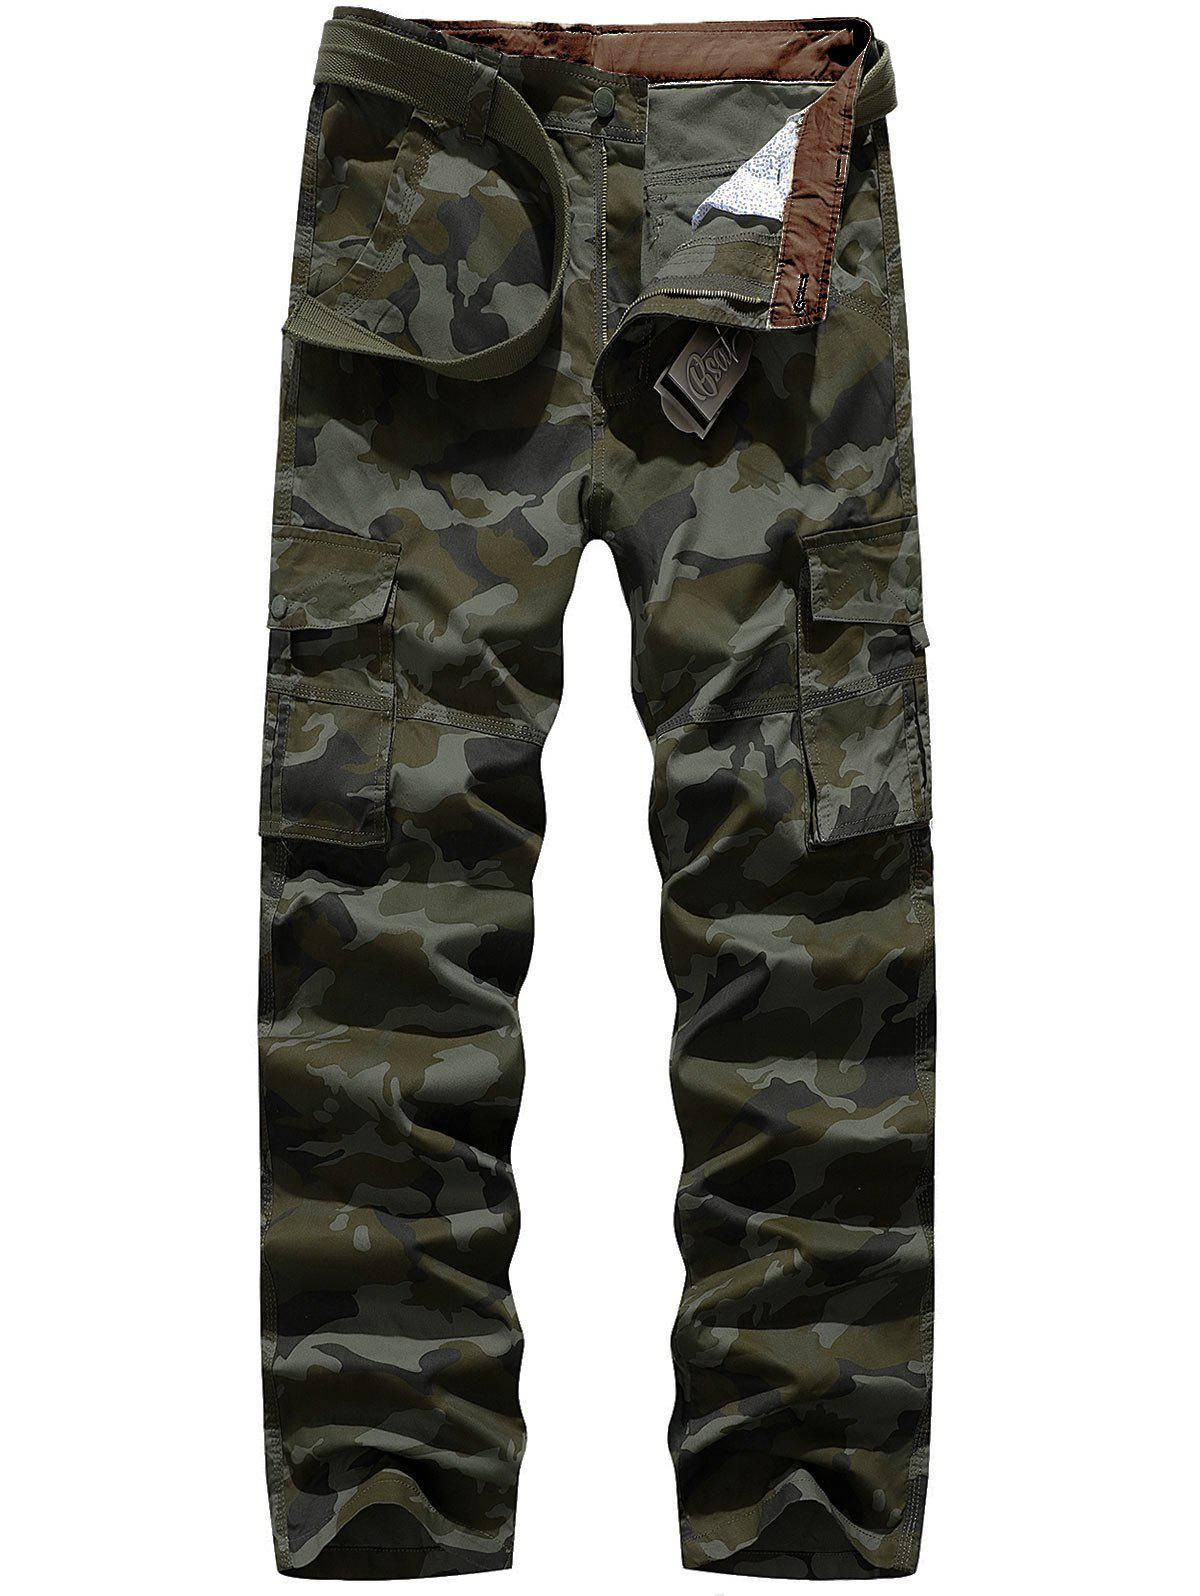 Multi-pocket Cargo Pants - ARMY GREEN CAMOUFLAGE 34